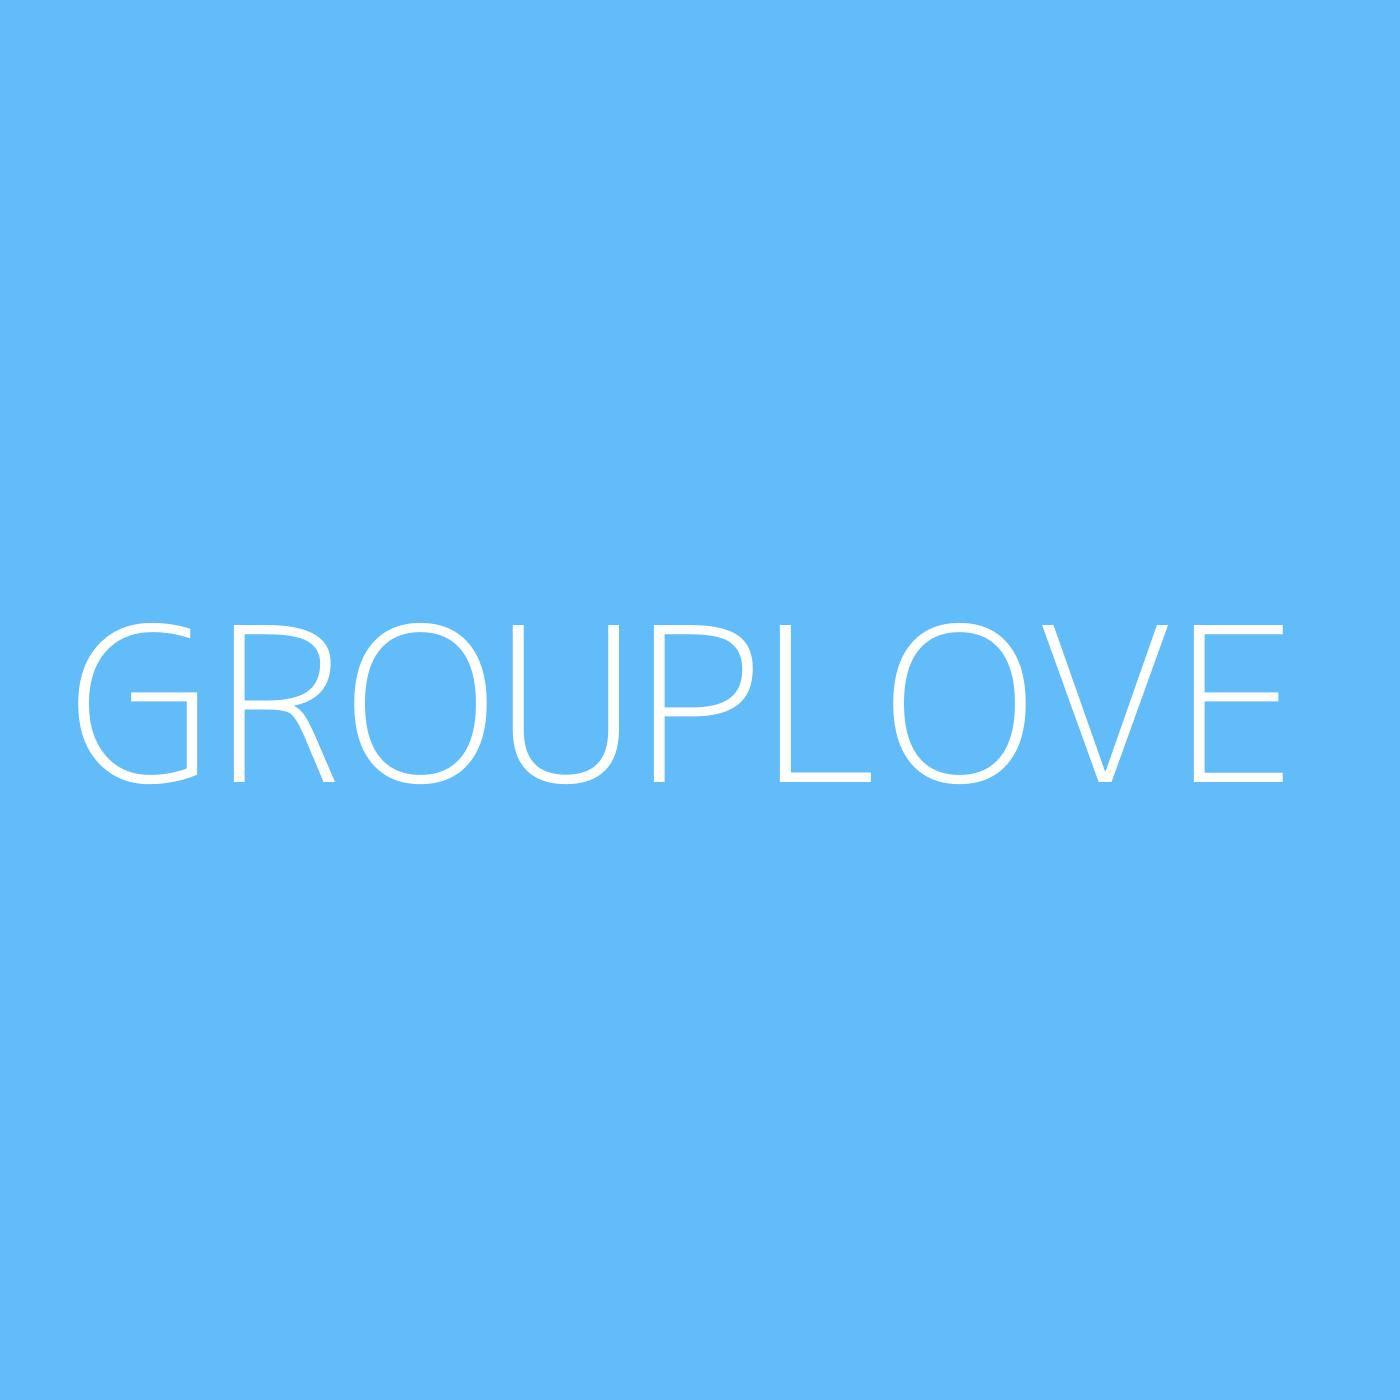 Grouplove Playlist Artwork